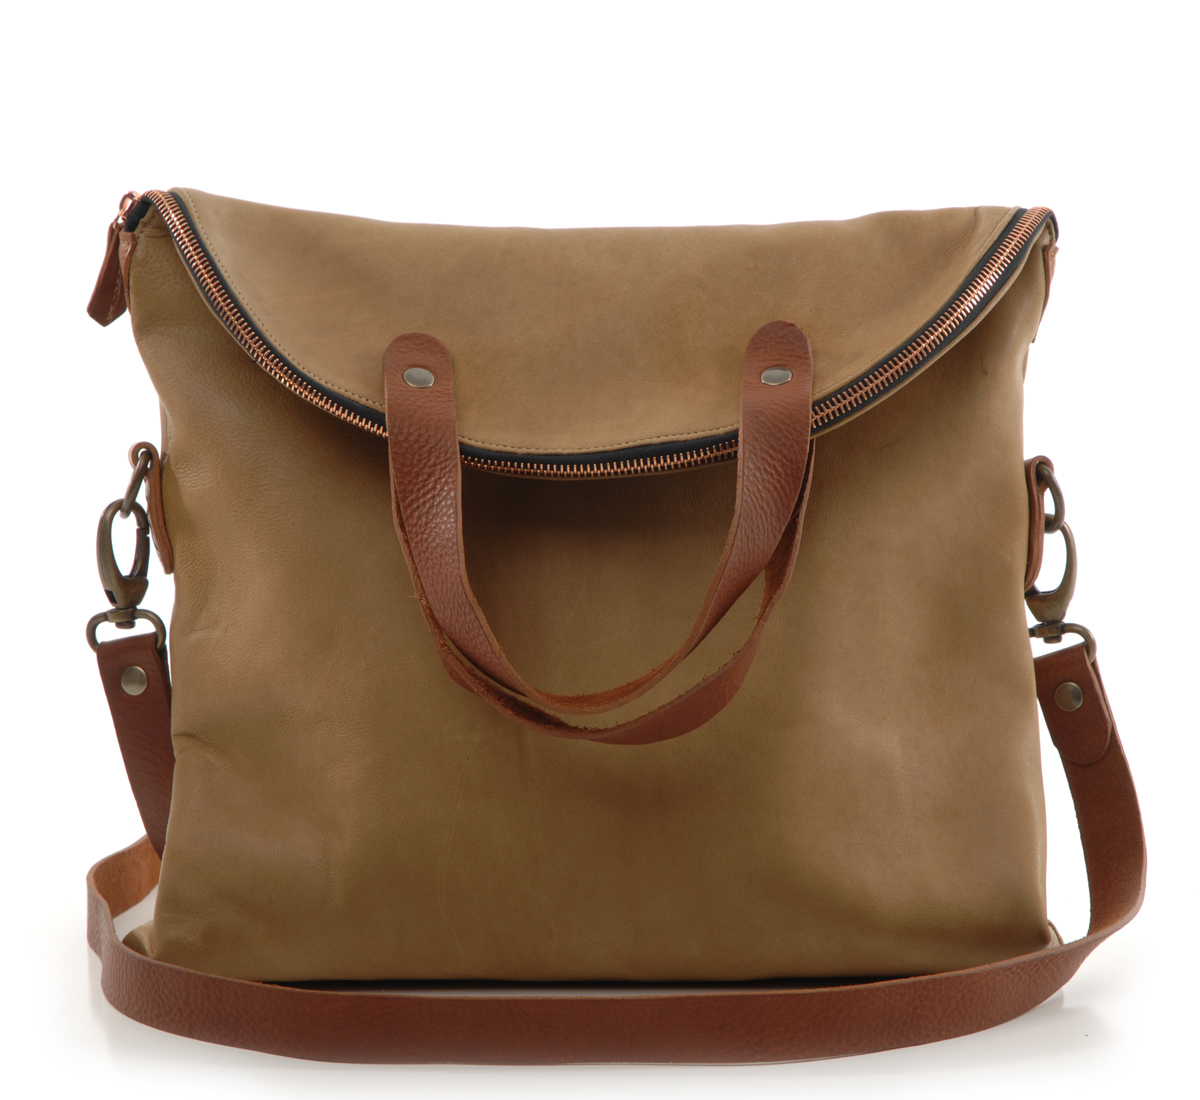 LostPropBelmontTan3 Belmont Messenger by Lost Property of London